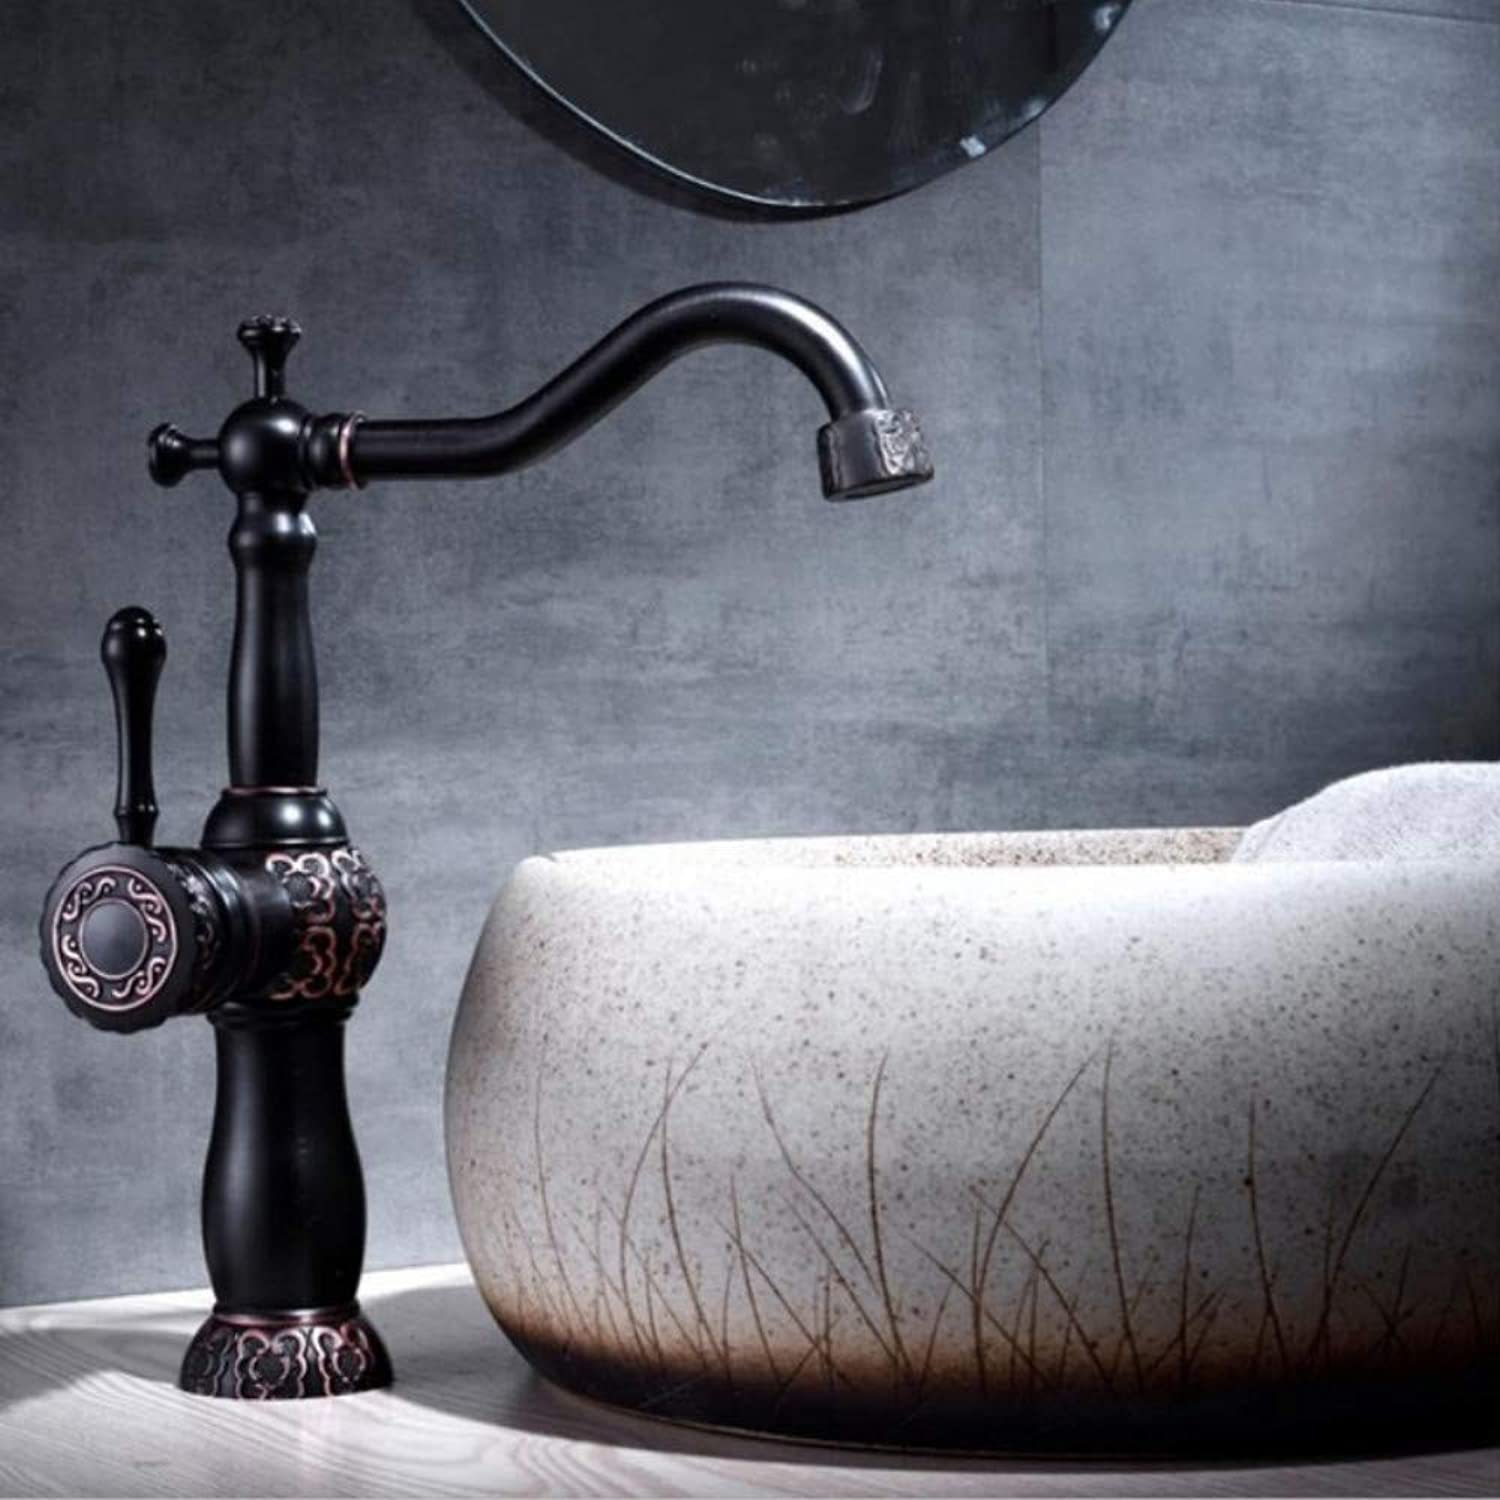 Lddpl Basin Faucets Black Oil Brushed Bathroom Faucet Basin Carved Tap redate Single Handle Hot and Cold Water Mixer Taps Crane